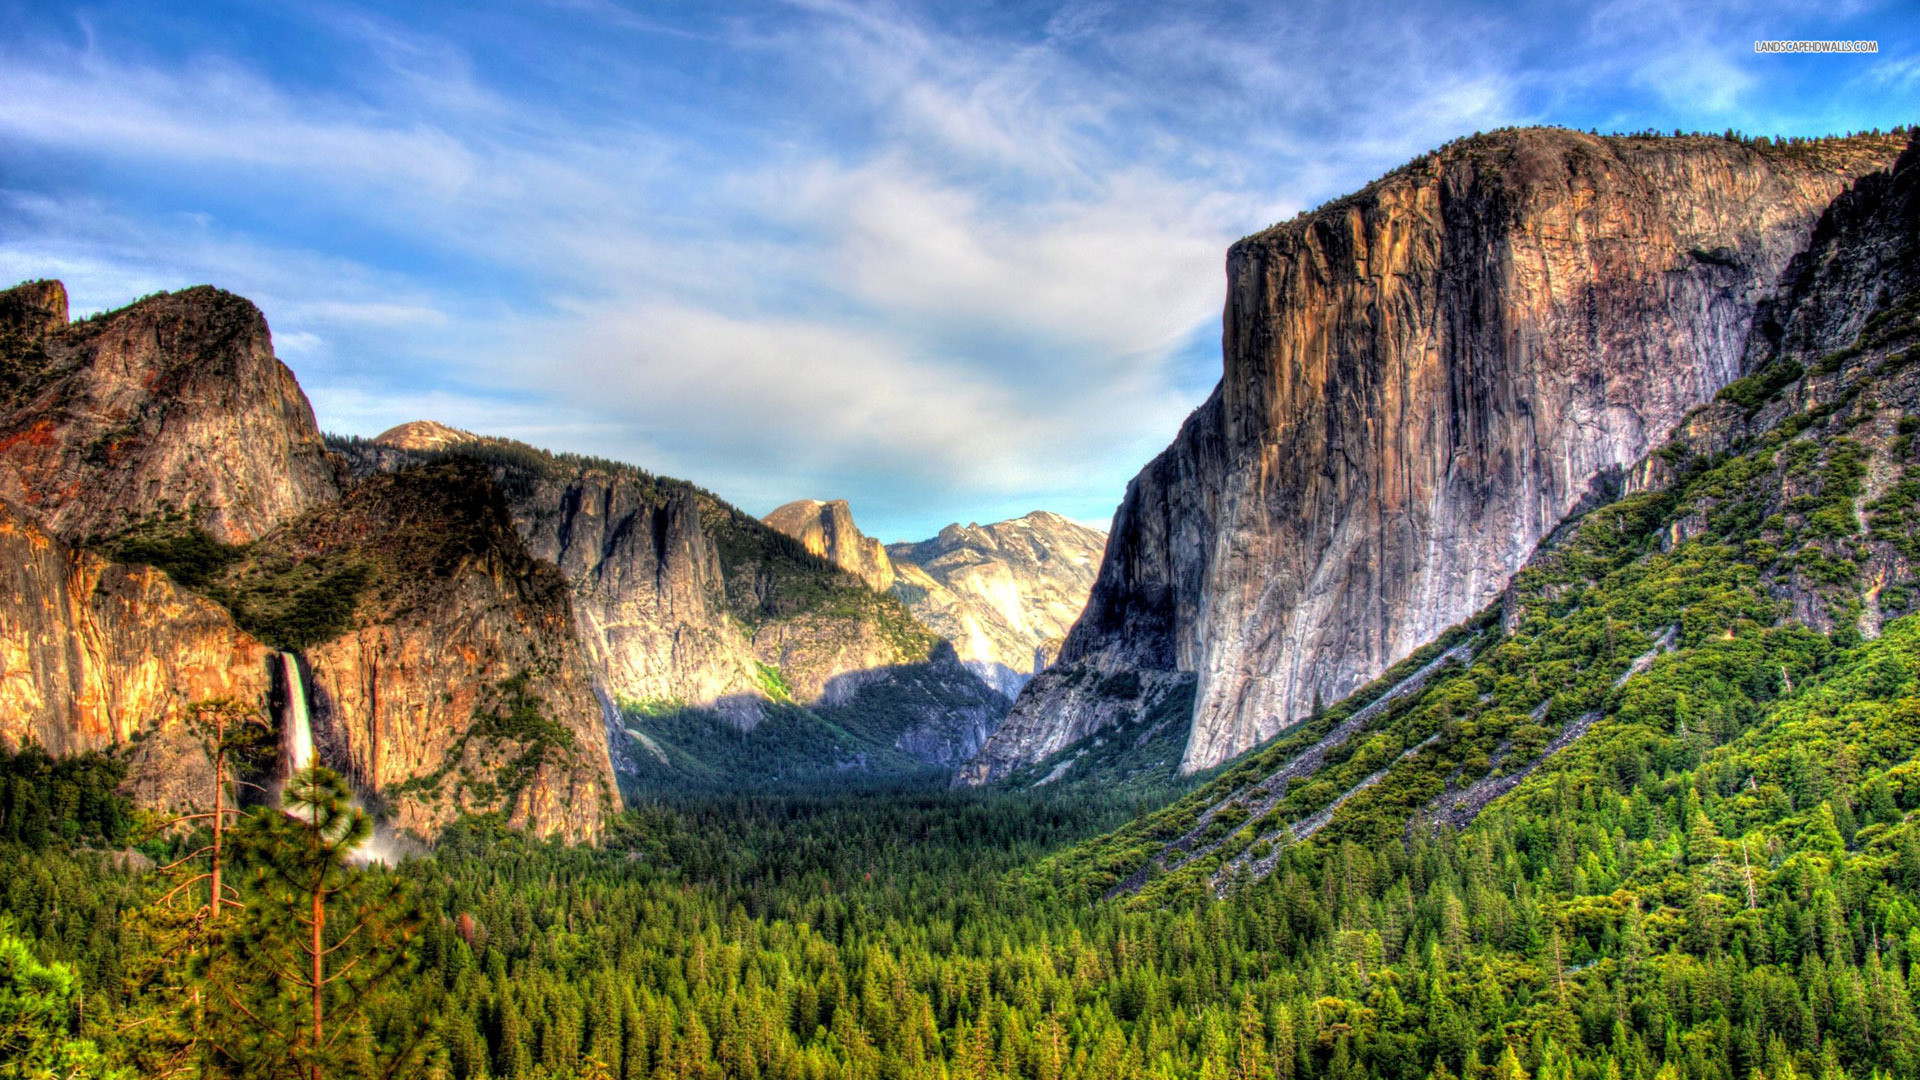 1920x1080 Yosemite Wallpaper, OS: Yosemite, k wallpapers, forest, OSX Yosemite  Wallpaper Wallpapers)